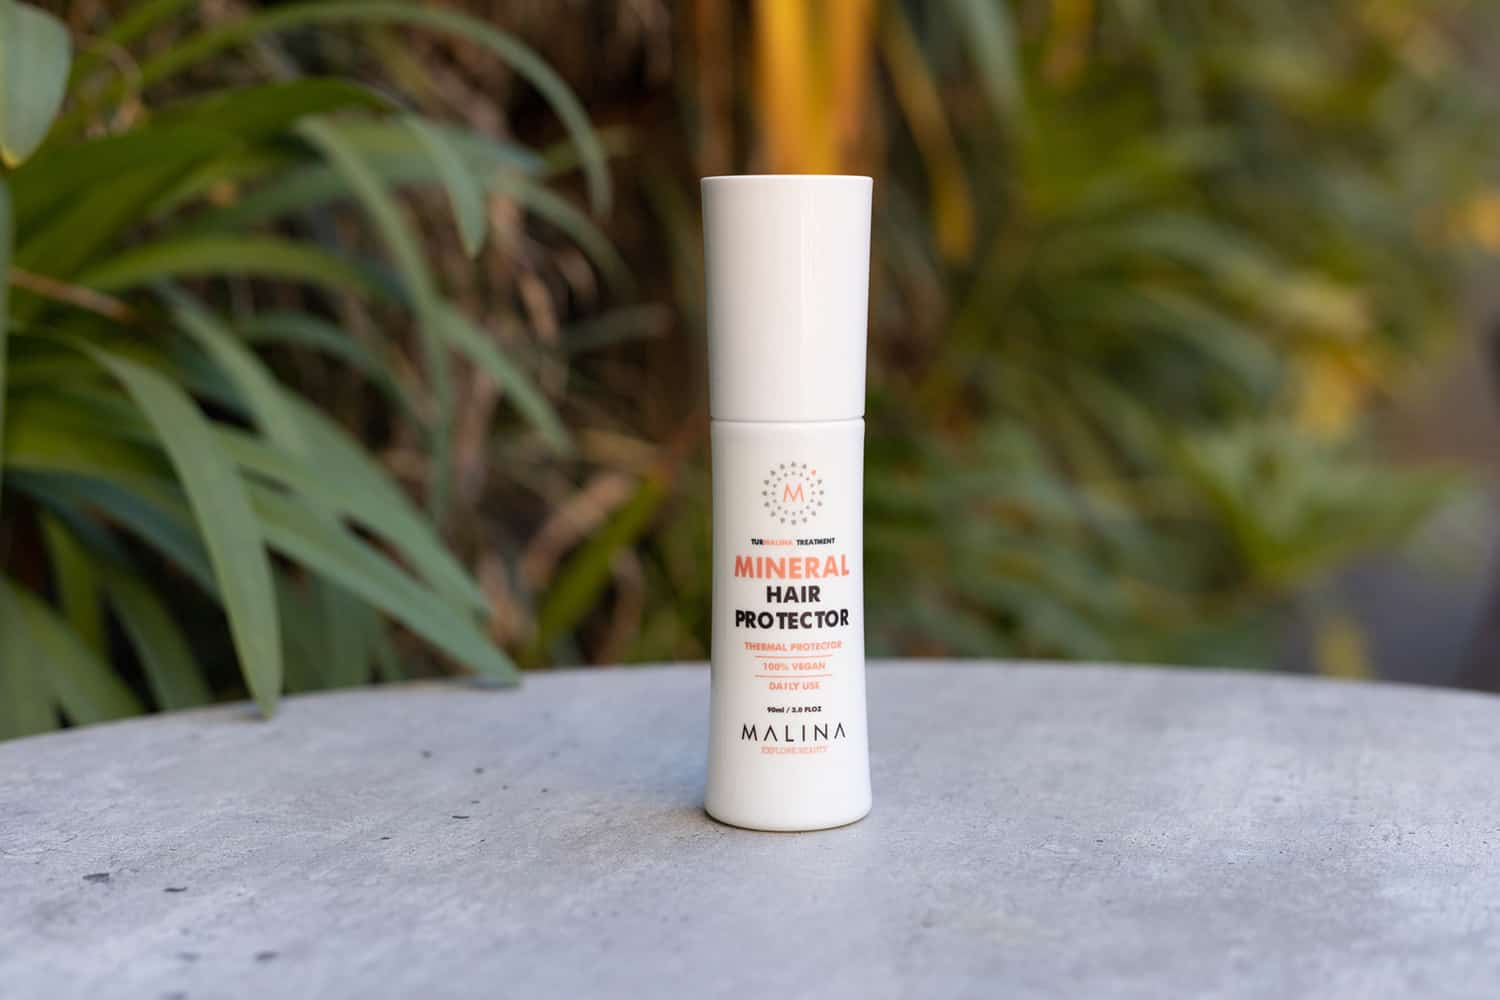 malina heat protectant spray used for curling hair with a straightener